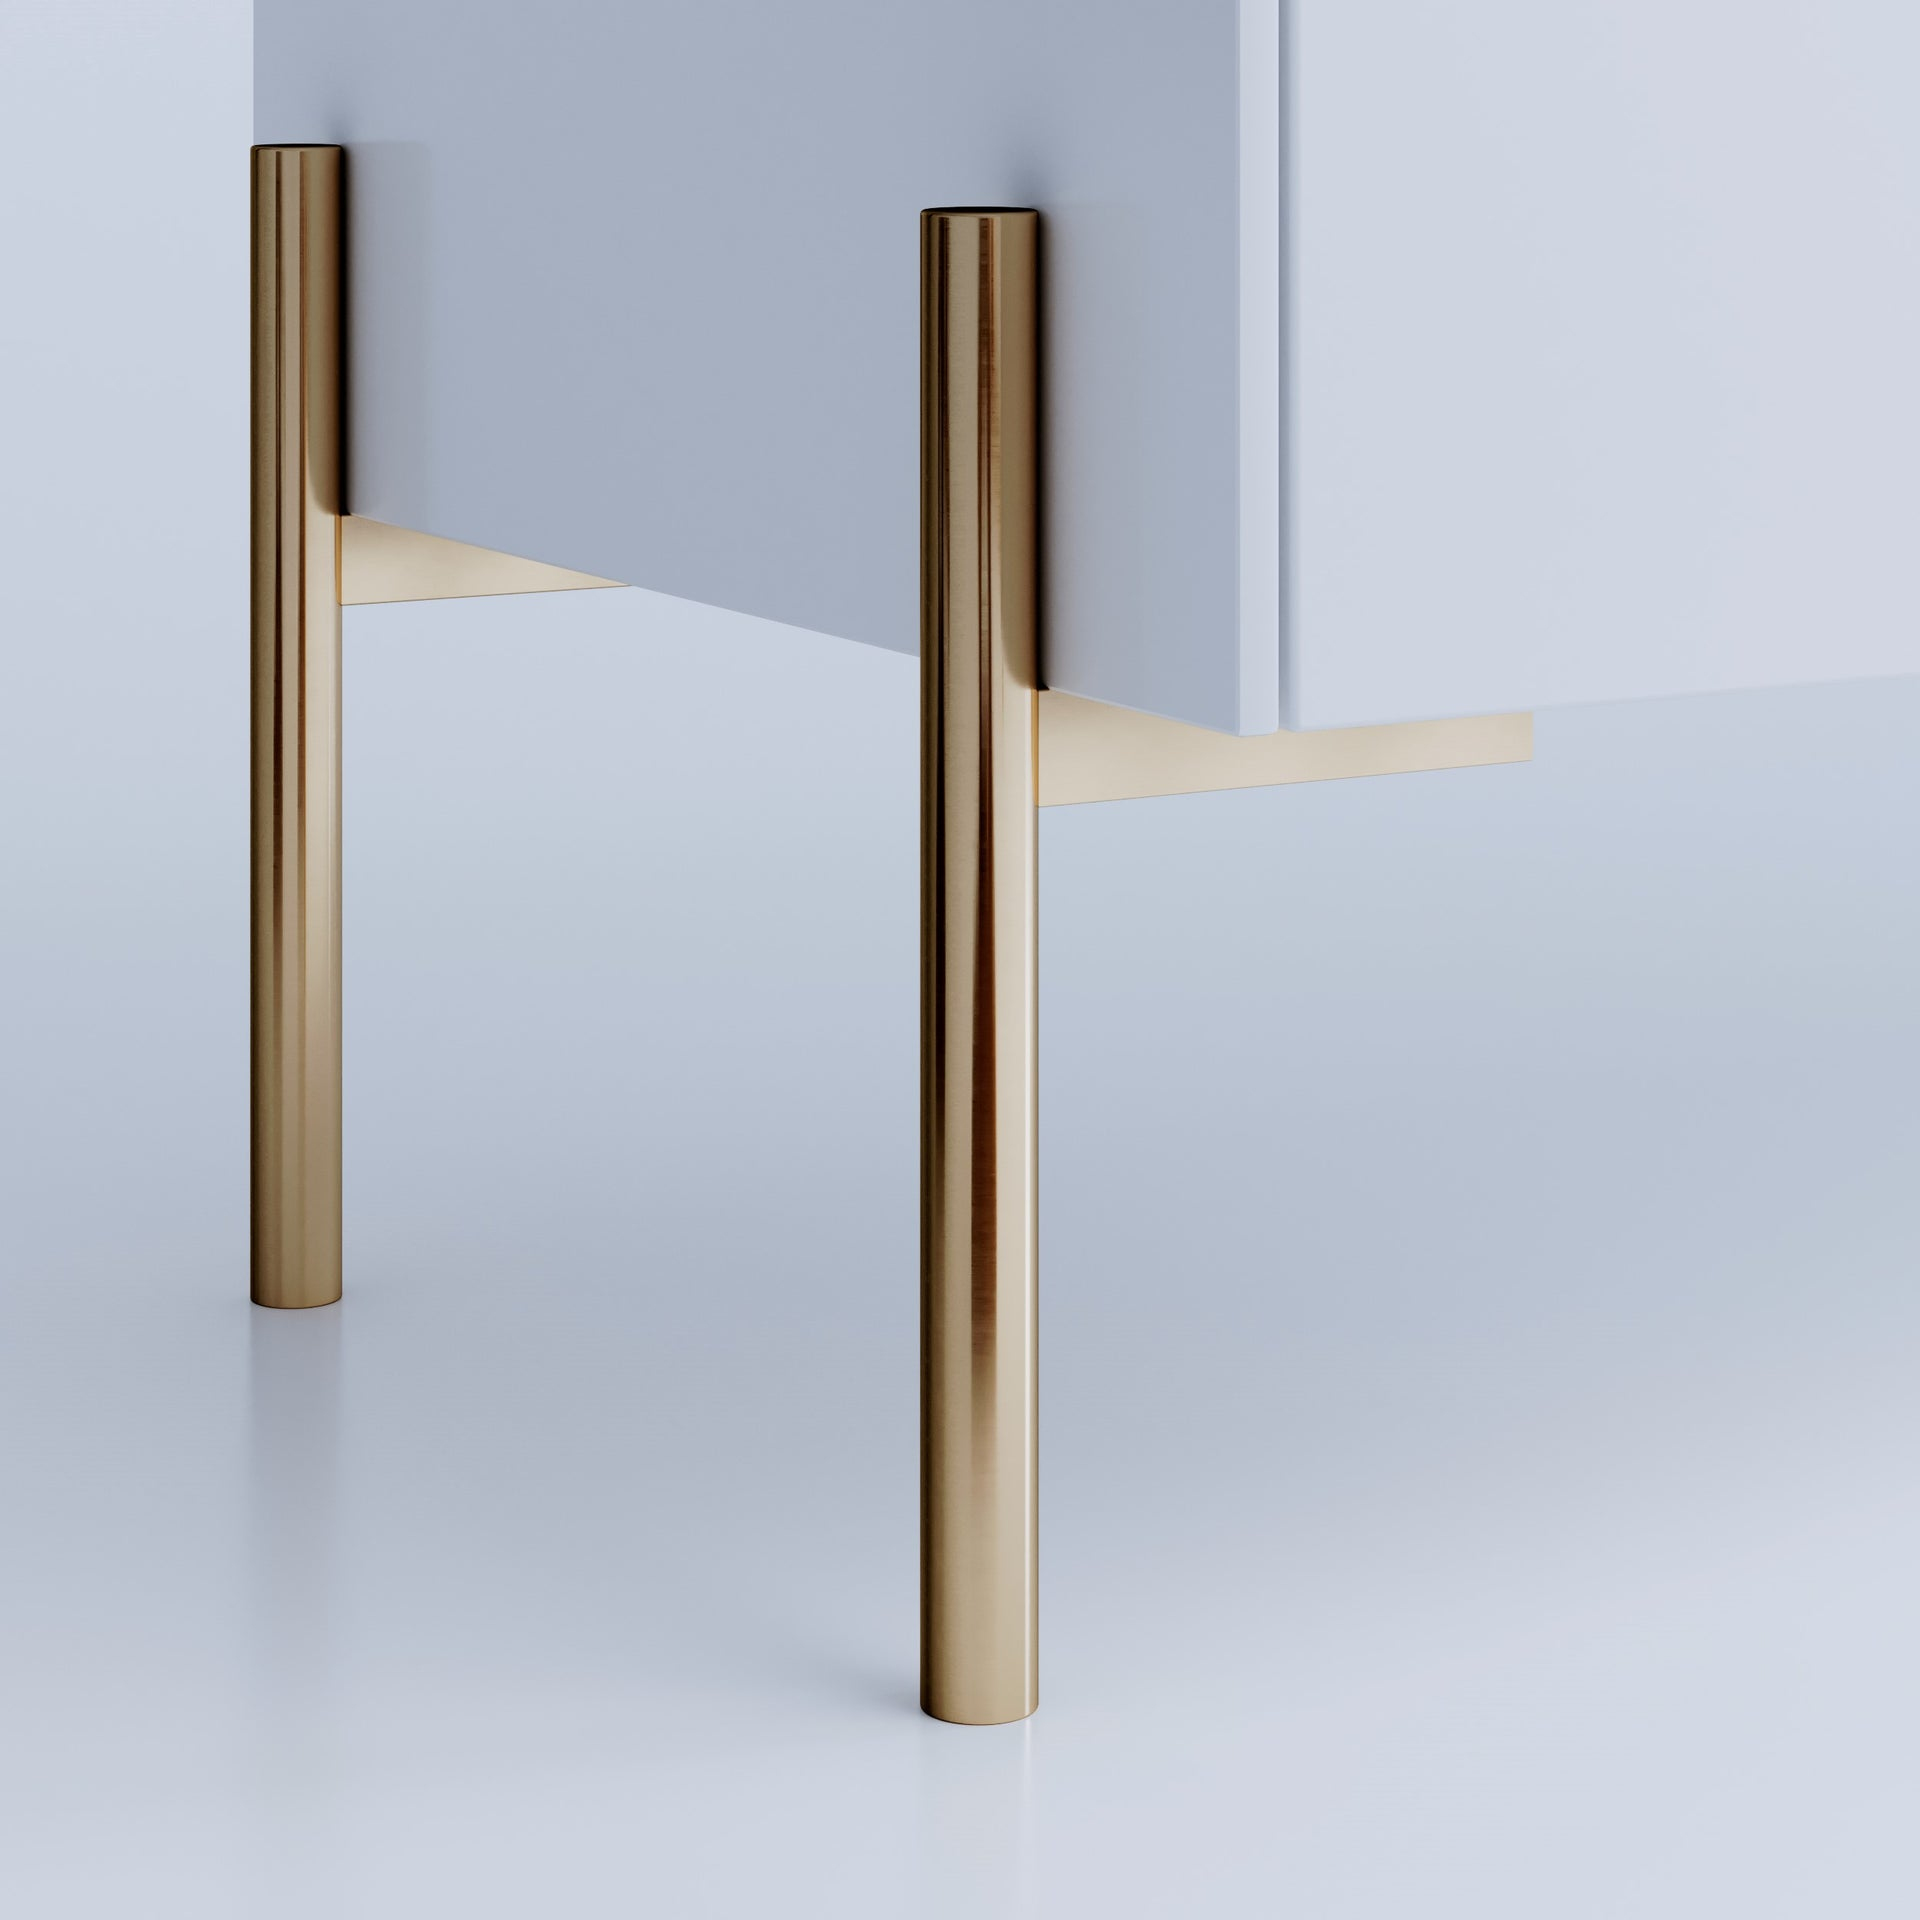 Brass Furniture Legs Sara by Norse Interiors